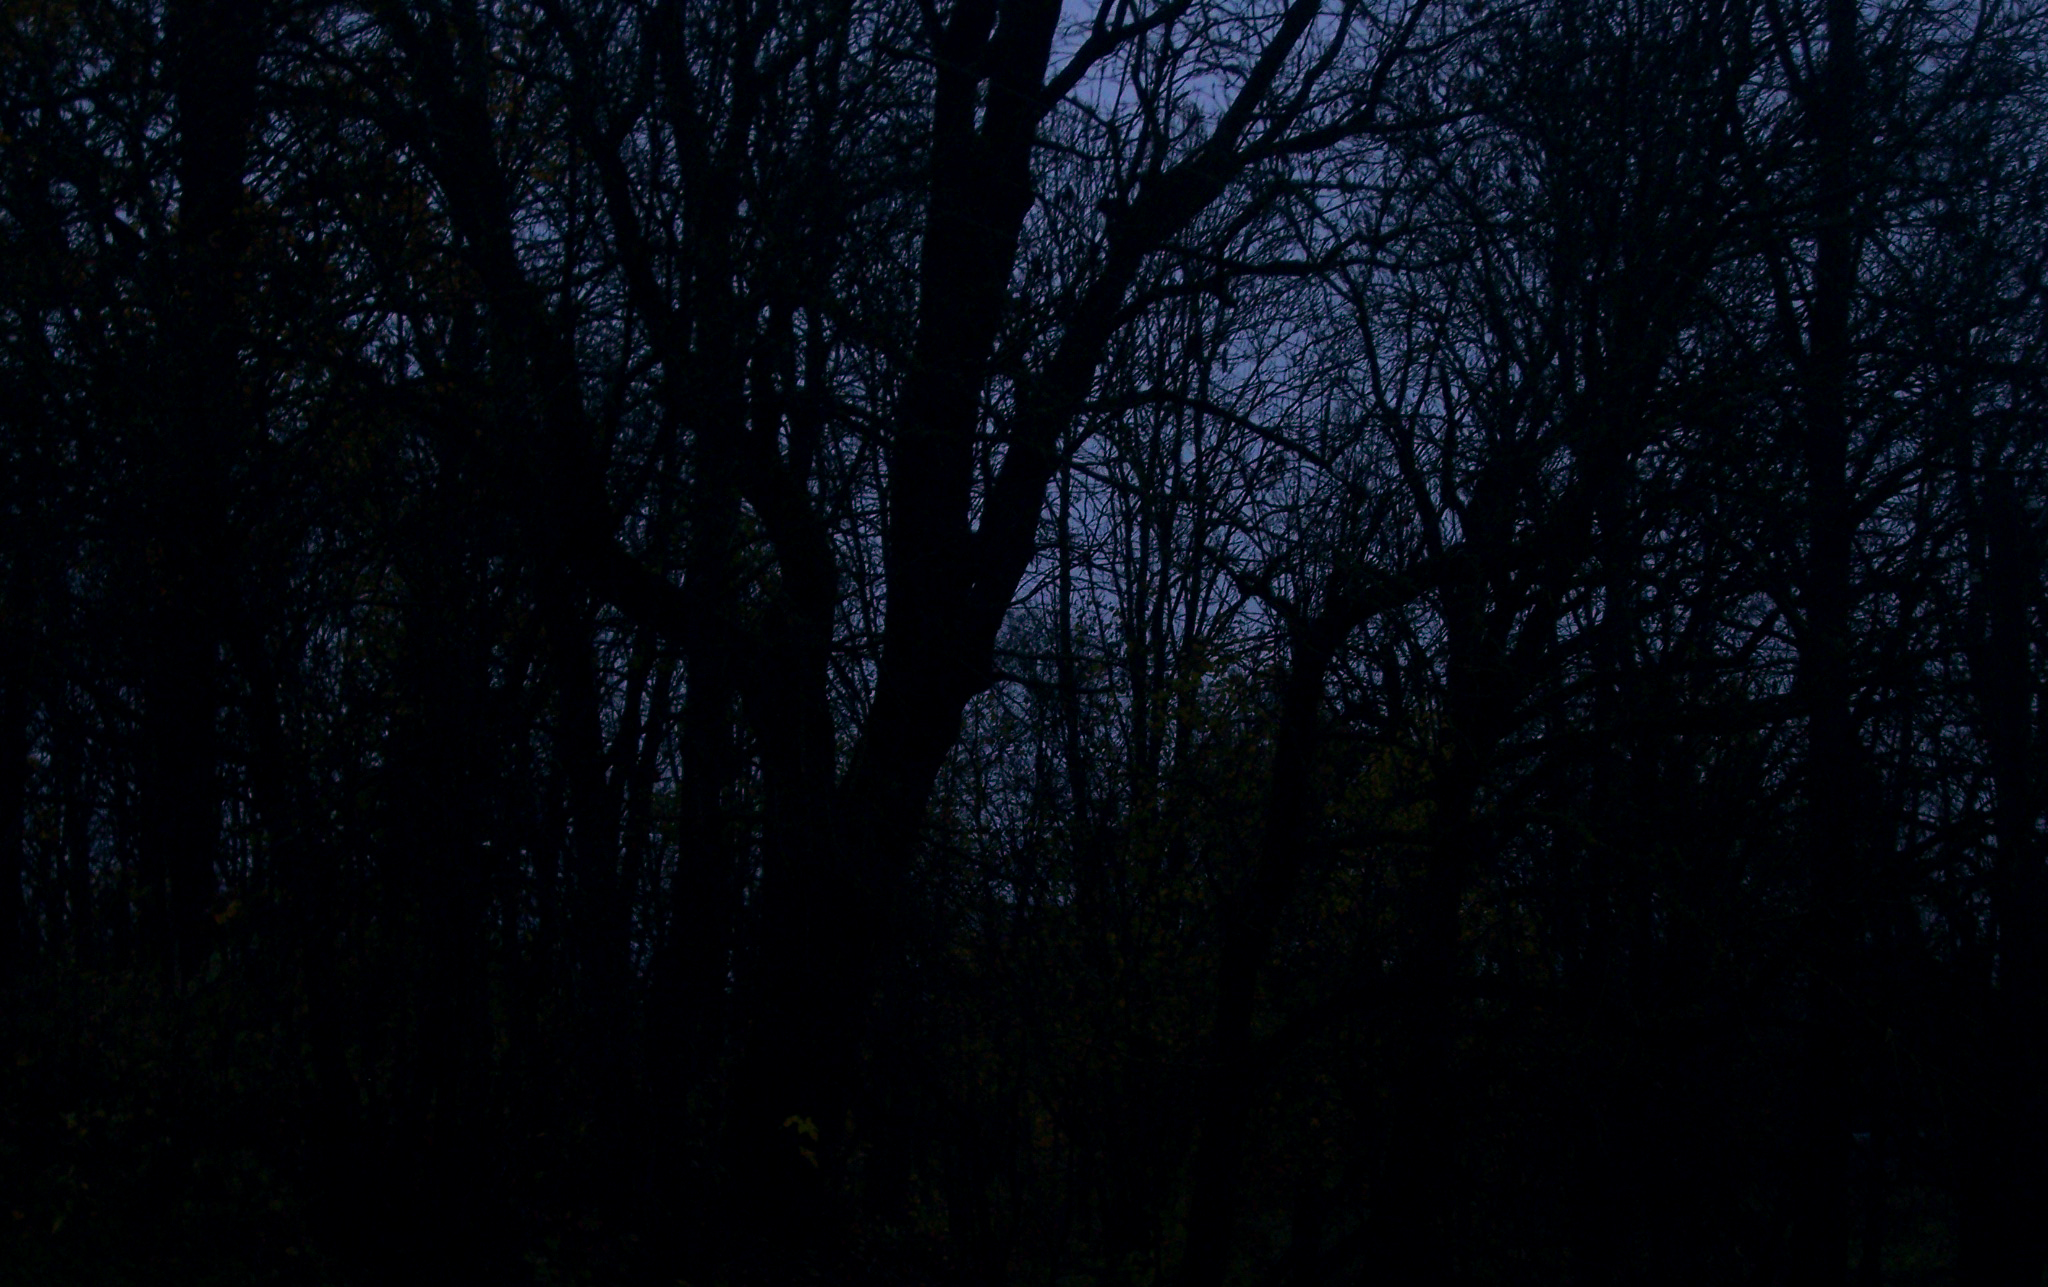 Dark forest, Alone, Cold, Dark, Fear, HQ Photo